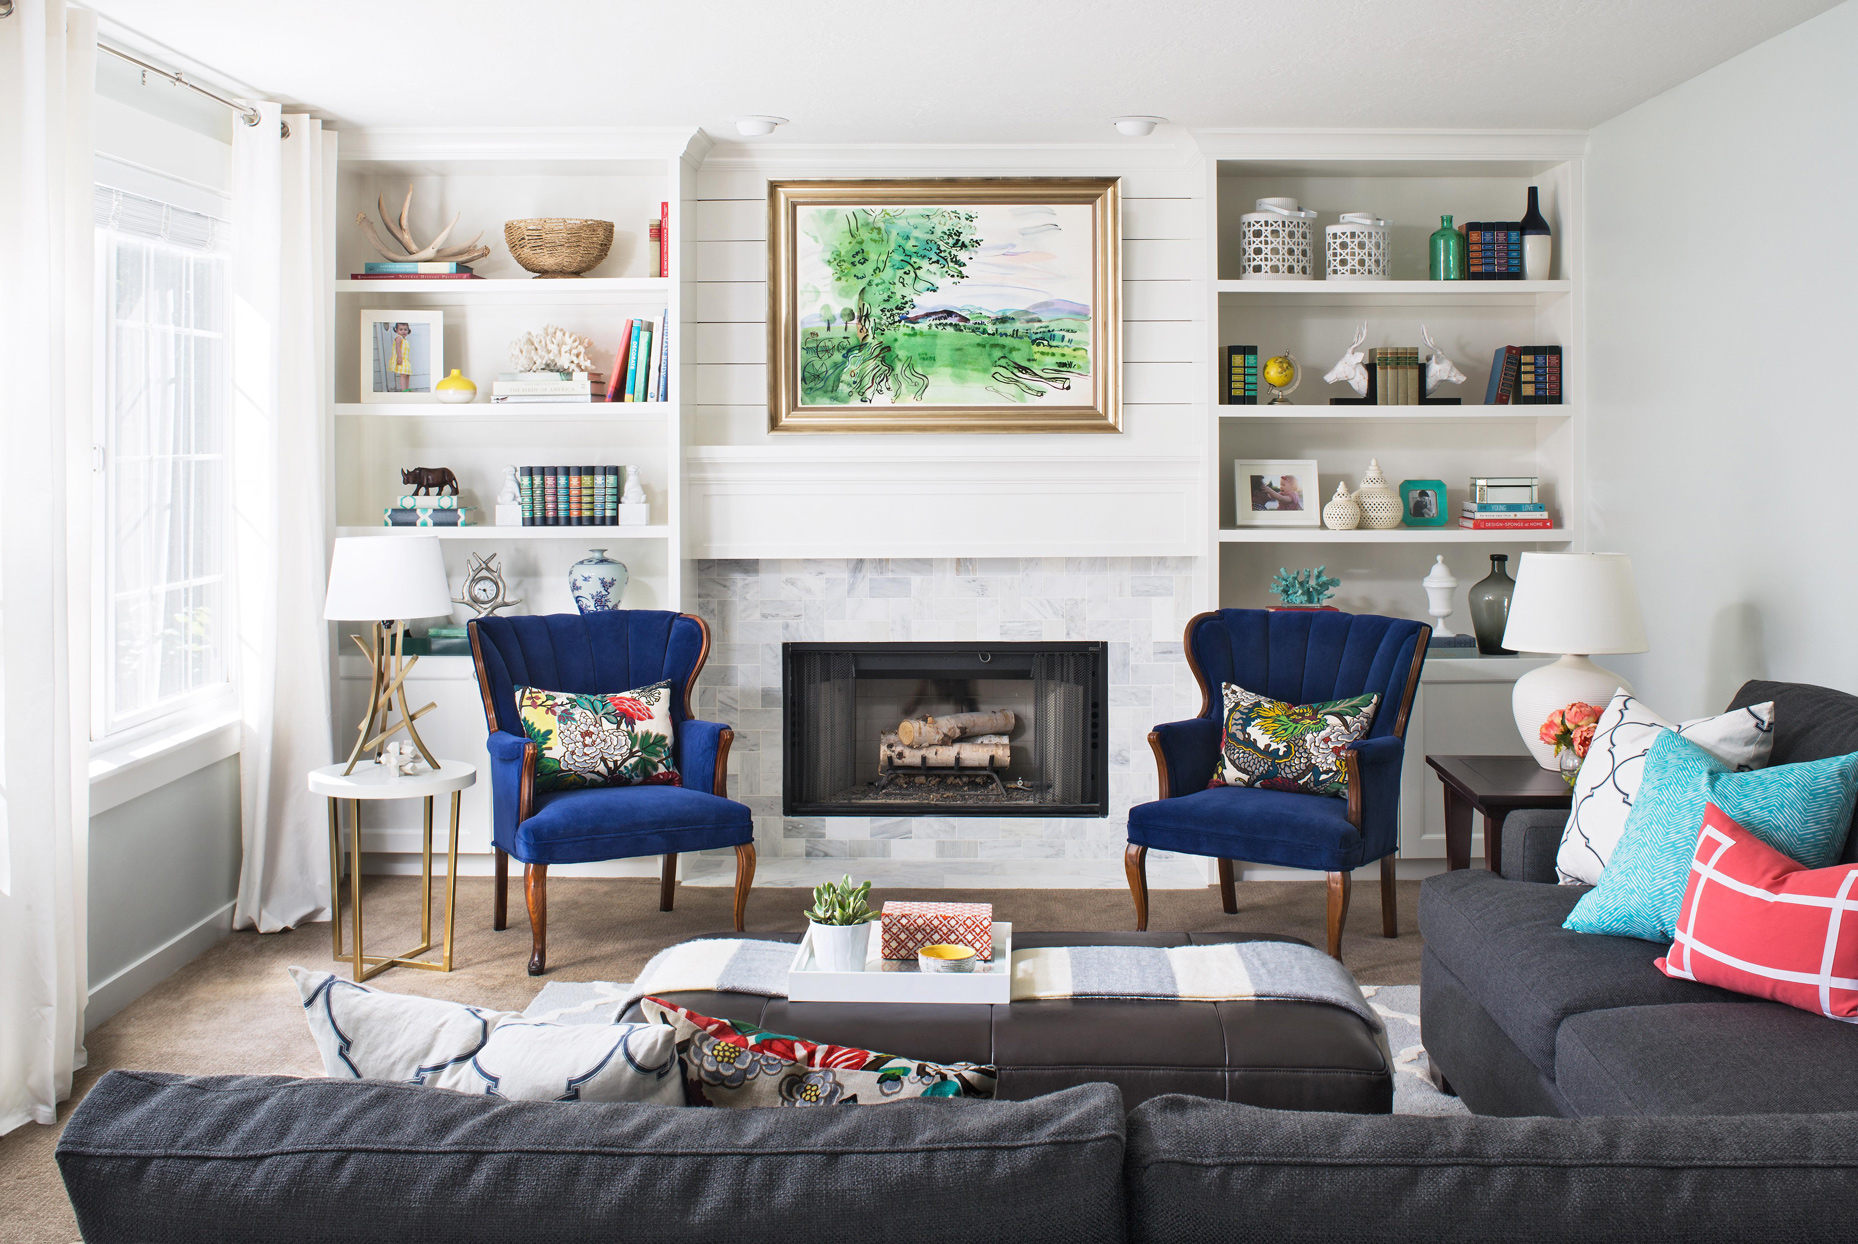 These Before And After Fireplace Makeovers Went From Cold To Cozy Better Homes Gardens